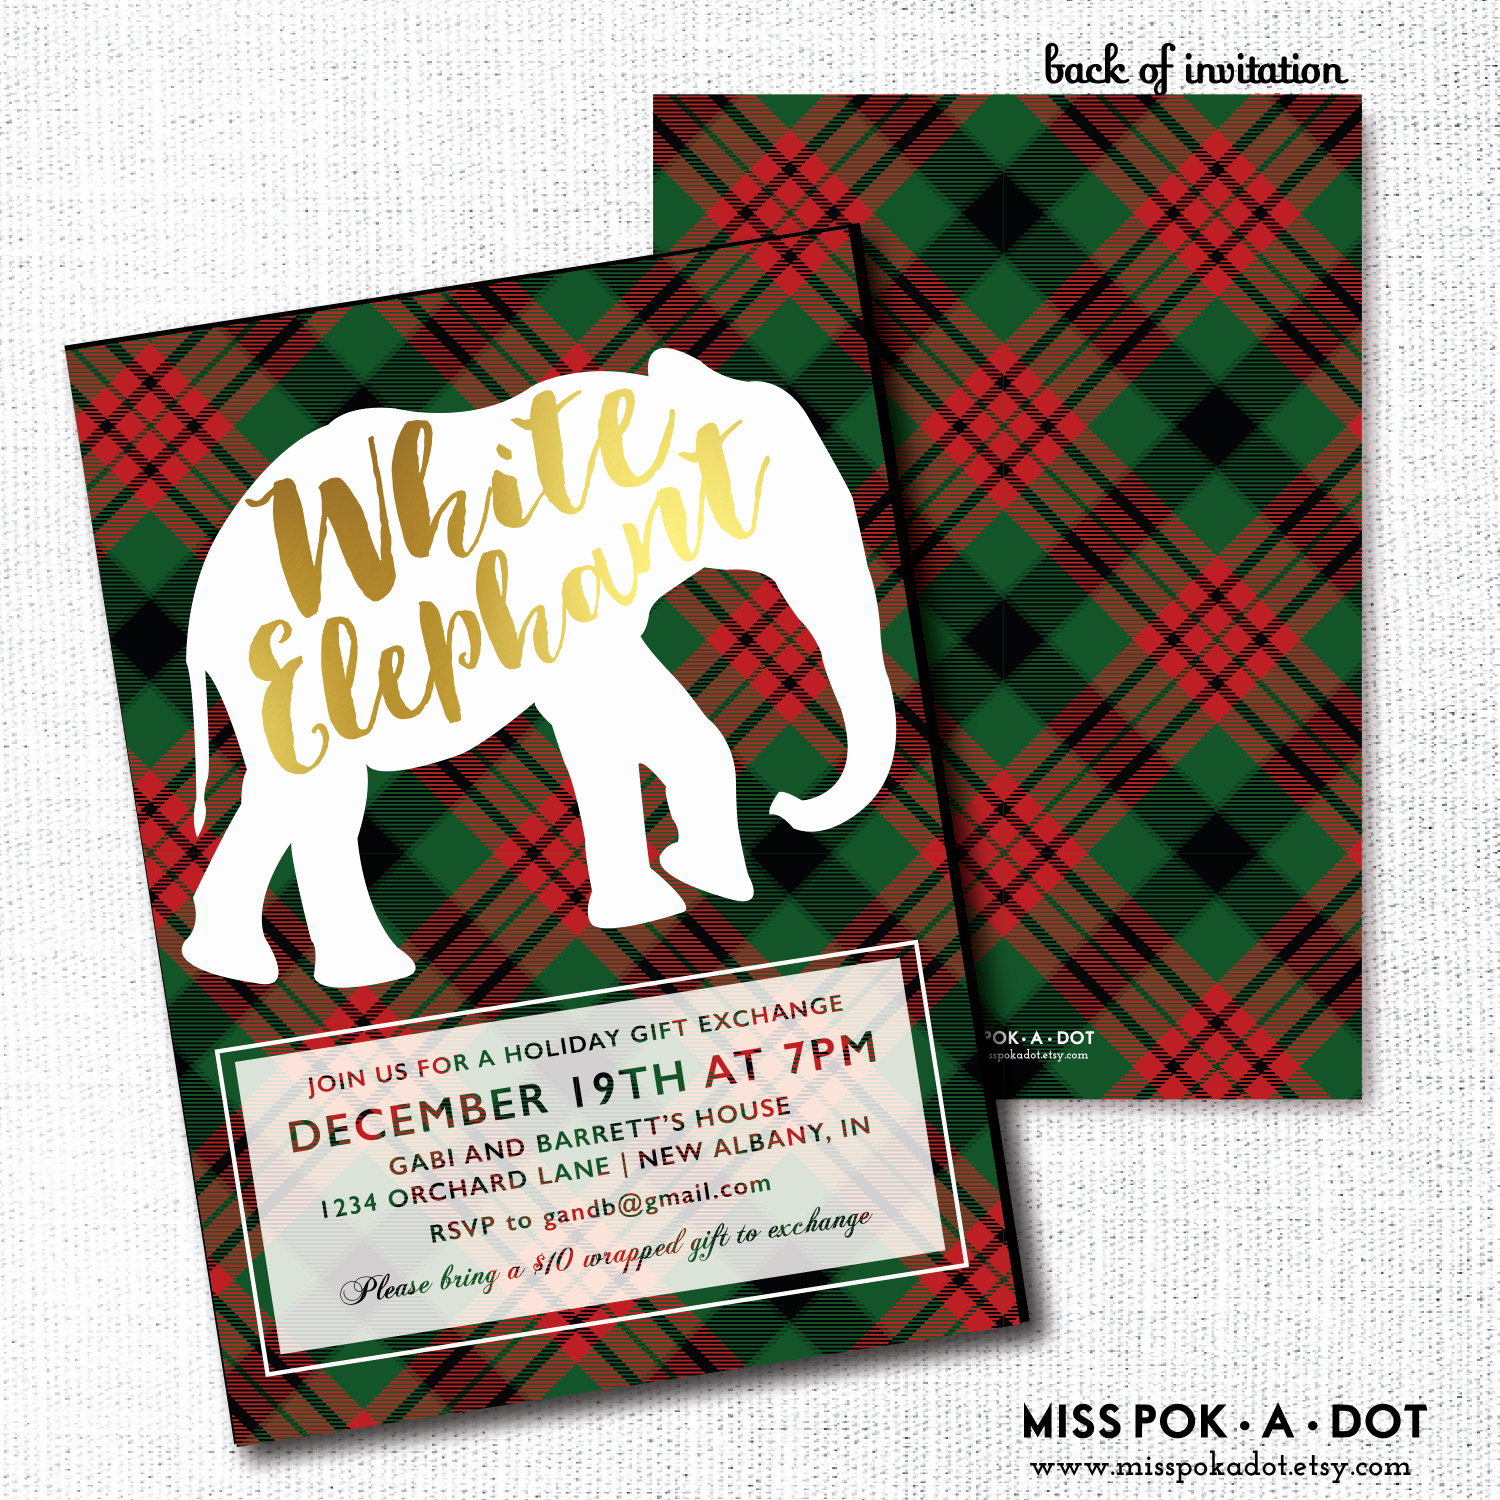 White Elephant Gift Exchange Invitation Elegant White Elephant Party Invitation Printable Gift Exchange